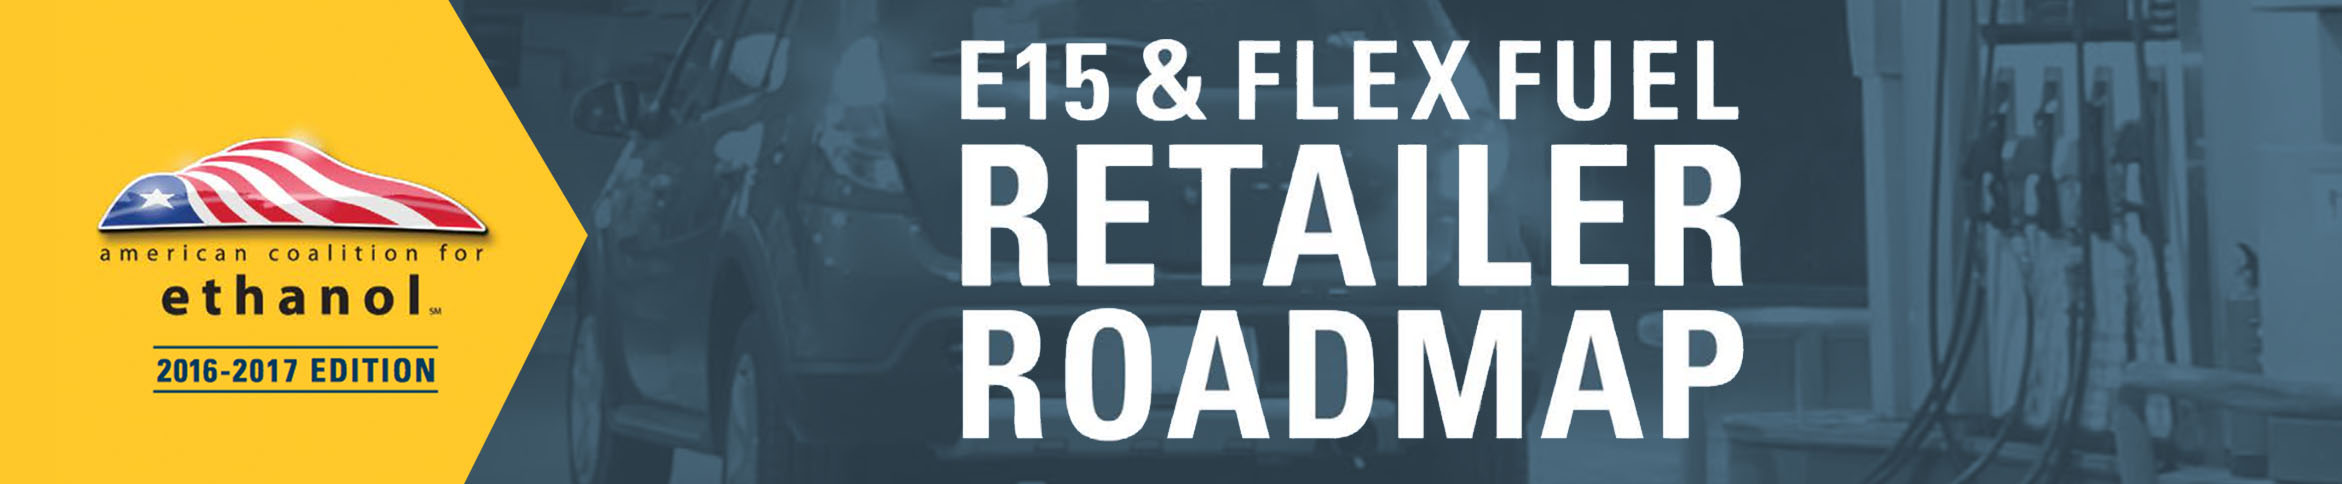 Flex Fuel Retailers Roadmap